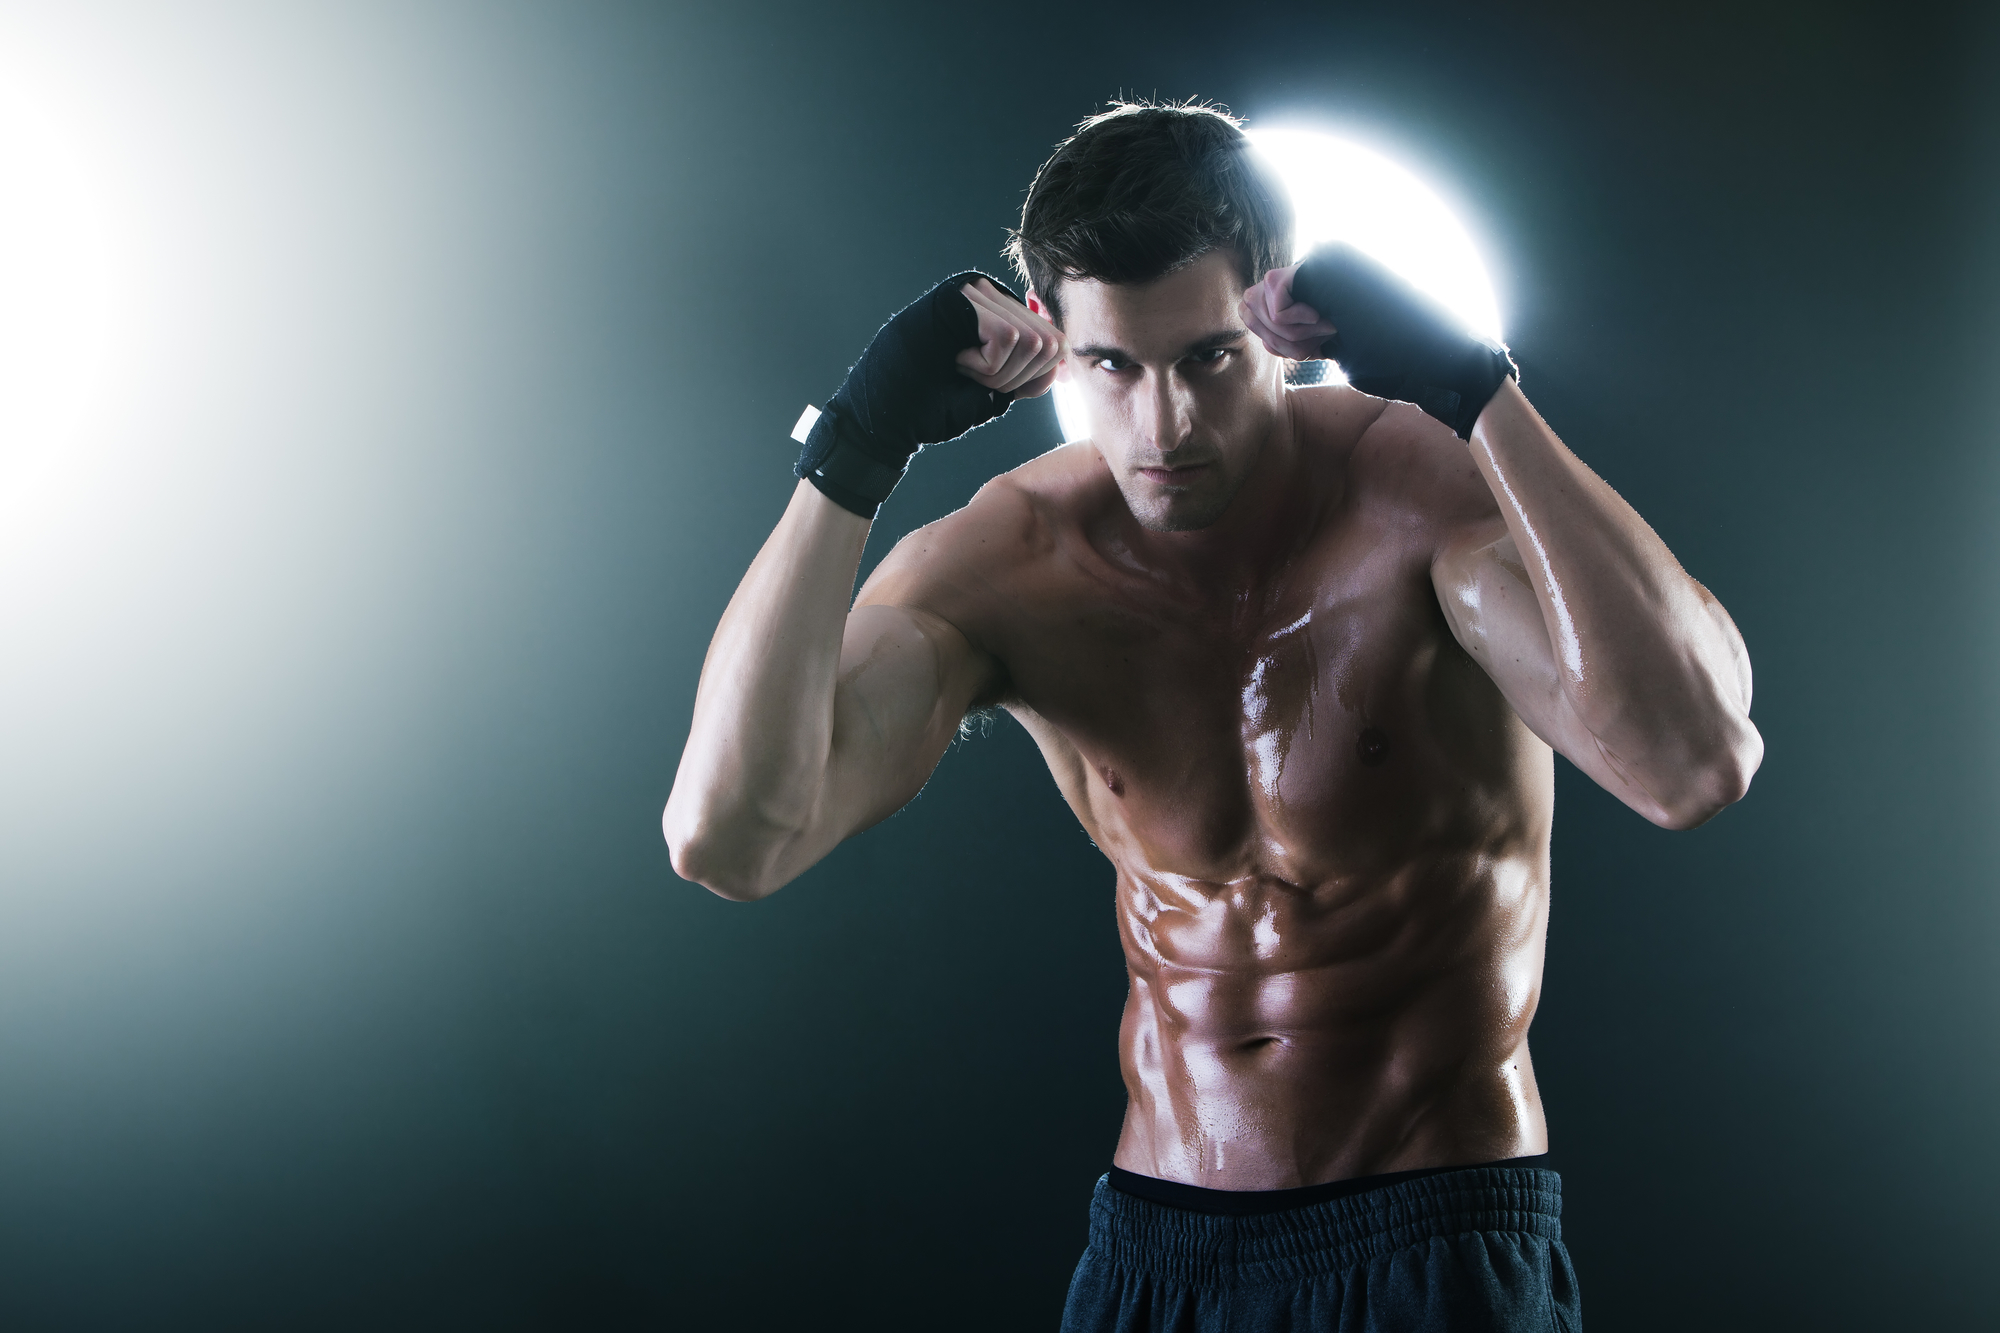 Young muscular sports guy with a naked torso boxing